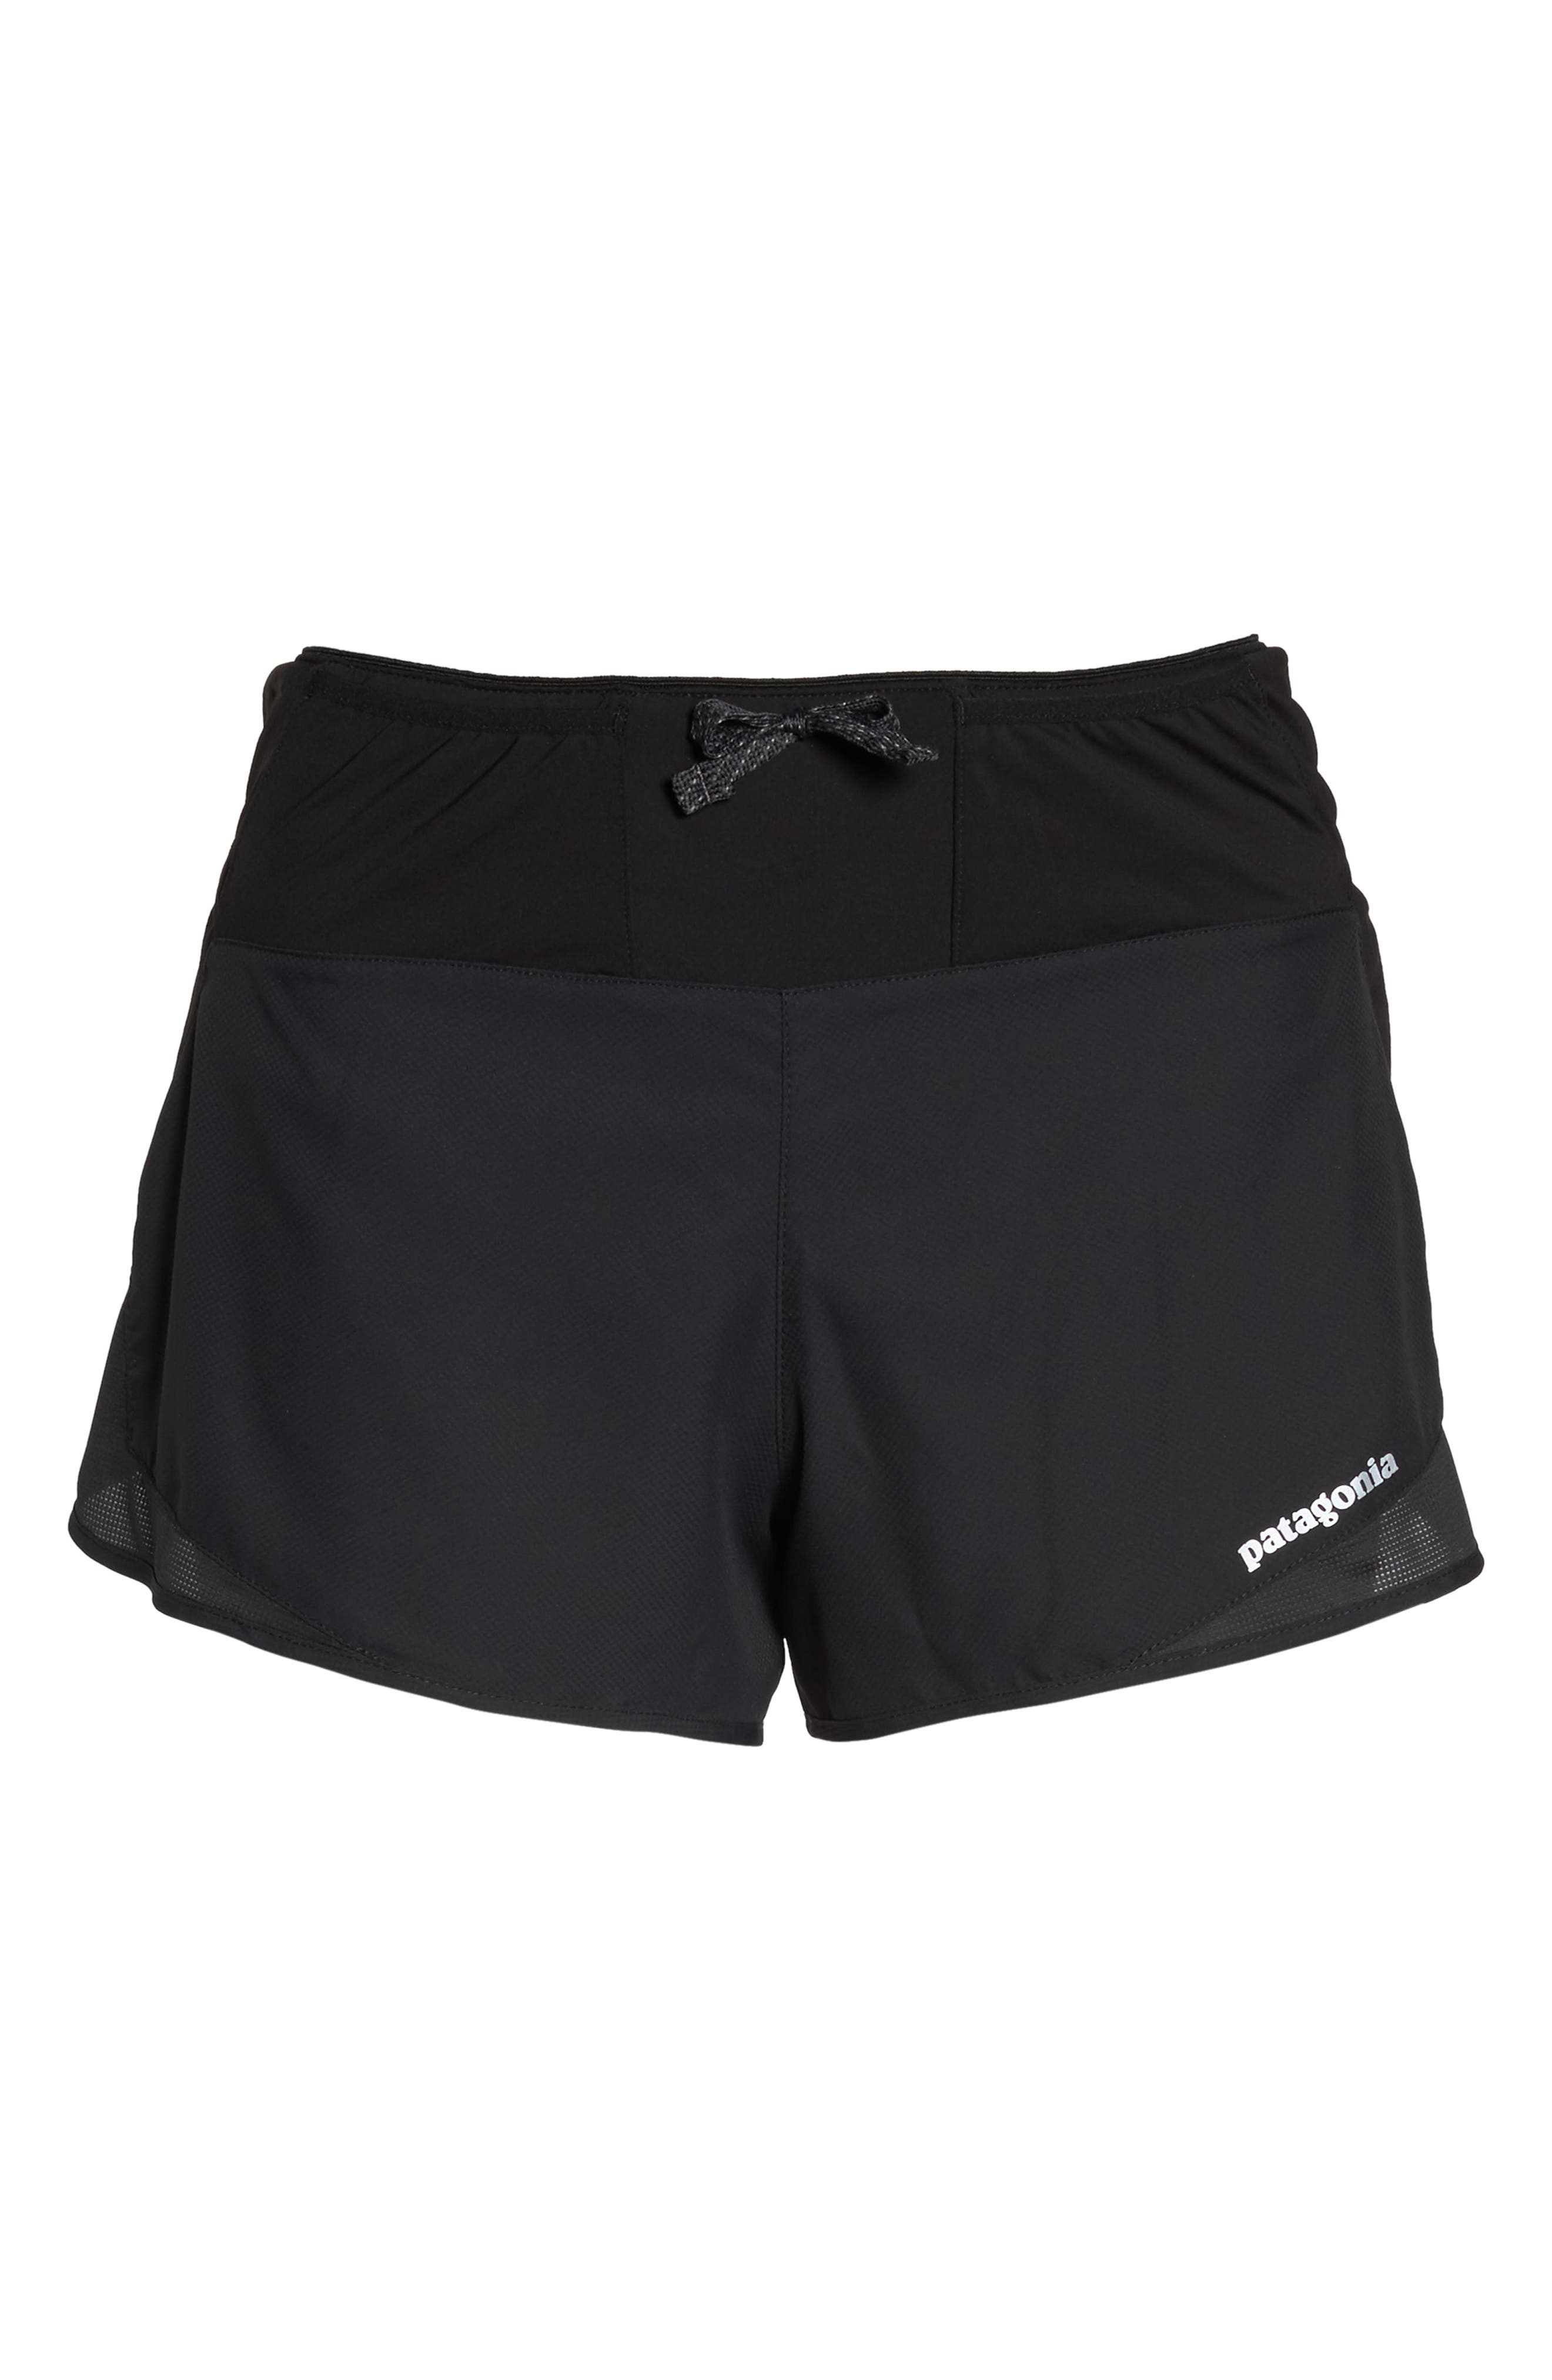 Strider Pro Trail Running Shorts,                             Alternate thumbnail 7, color,                             001